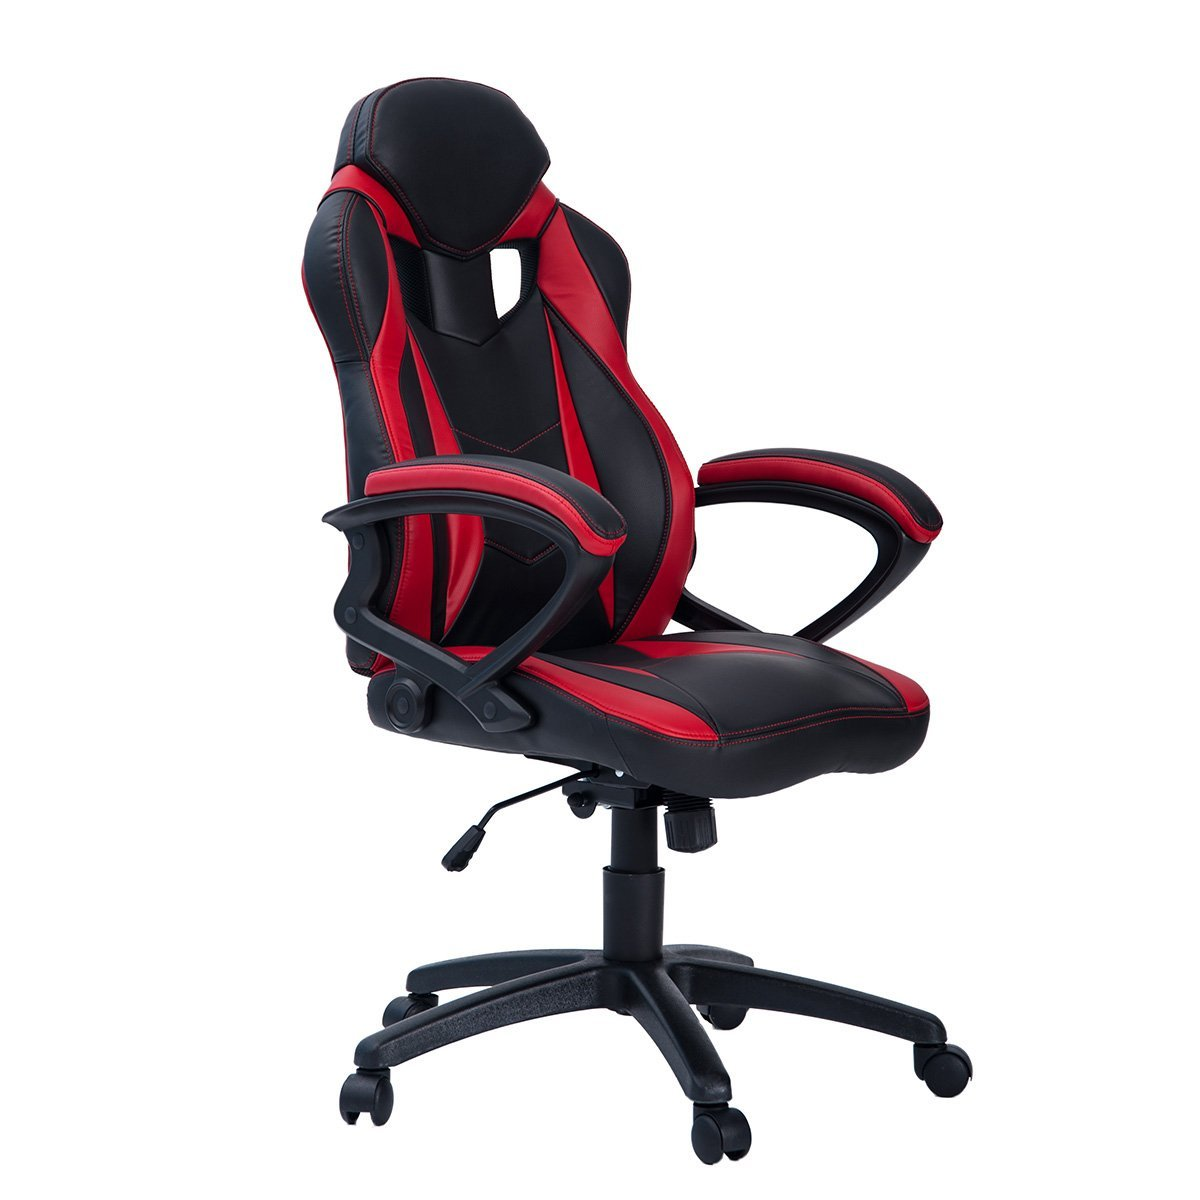 Merax Ergonomic Racing Style PU Leather Gaming Chair for Home and Office (Red & Black)